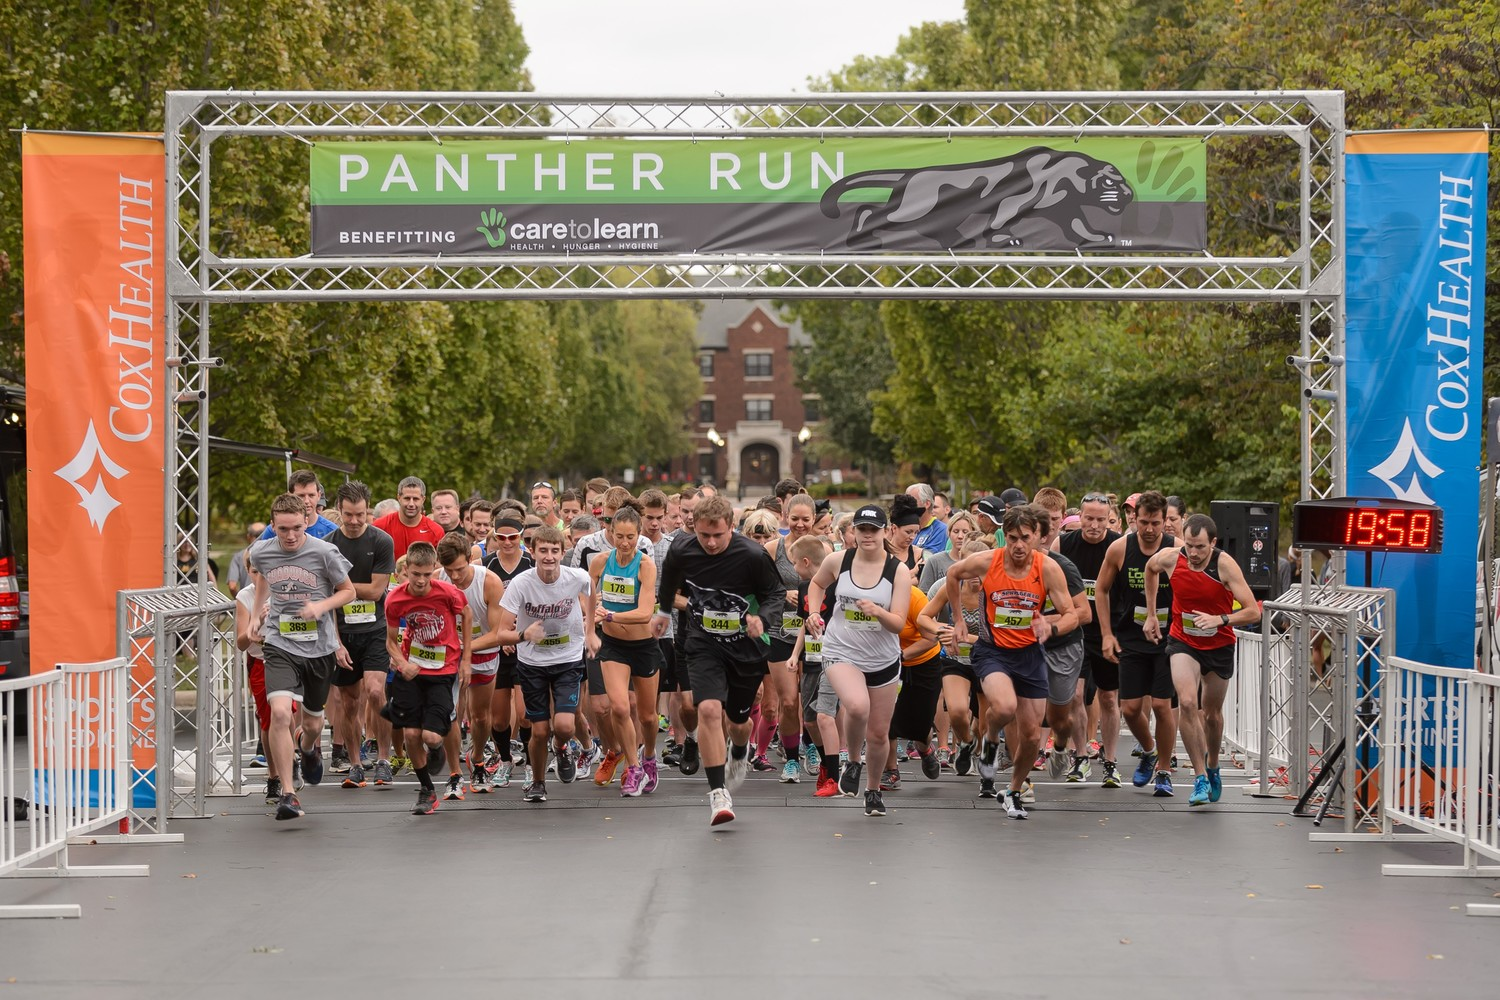 Runners take off at the 2017 Panther Run benefitting Care to Learn.